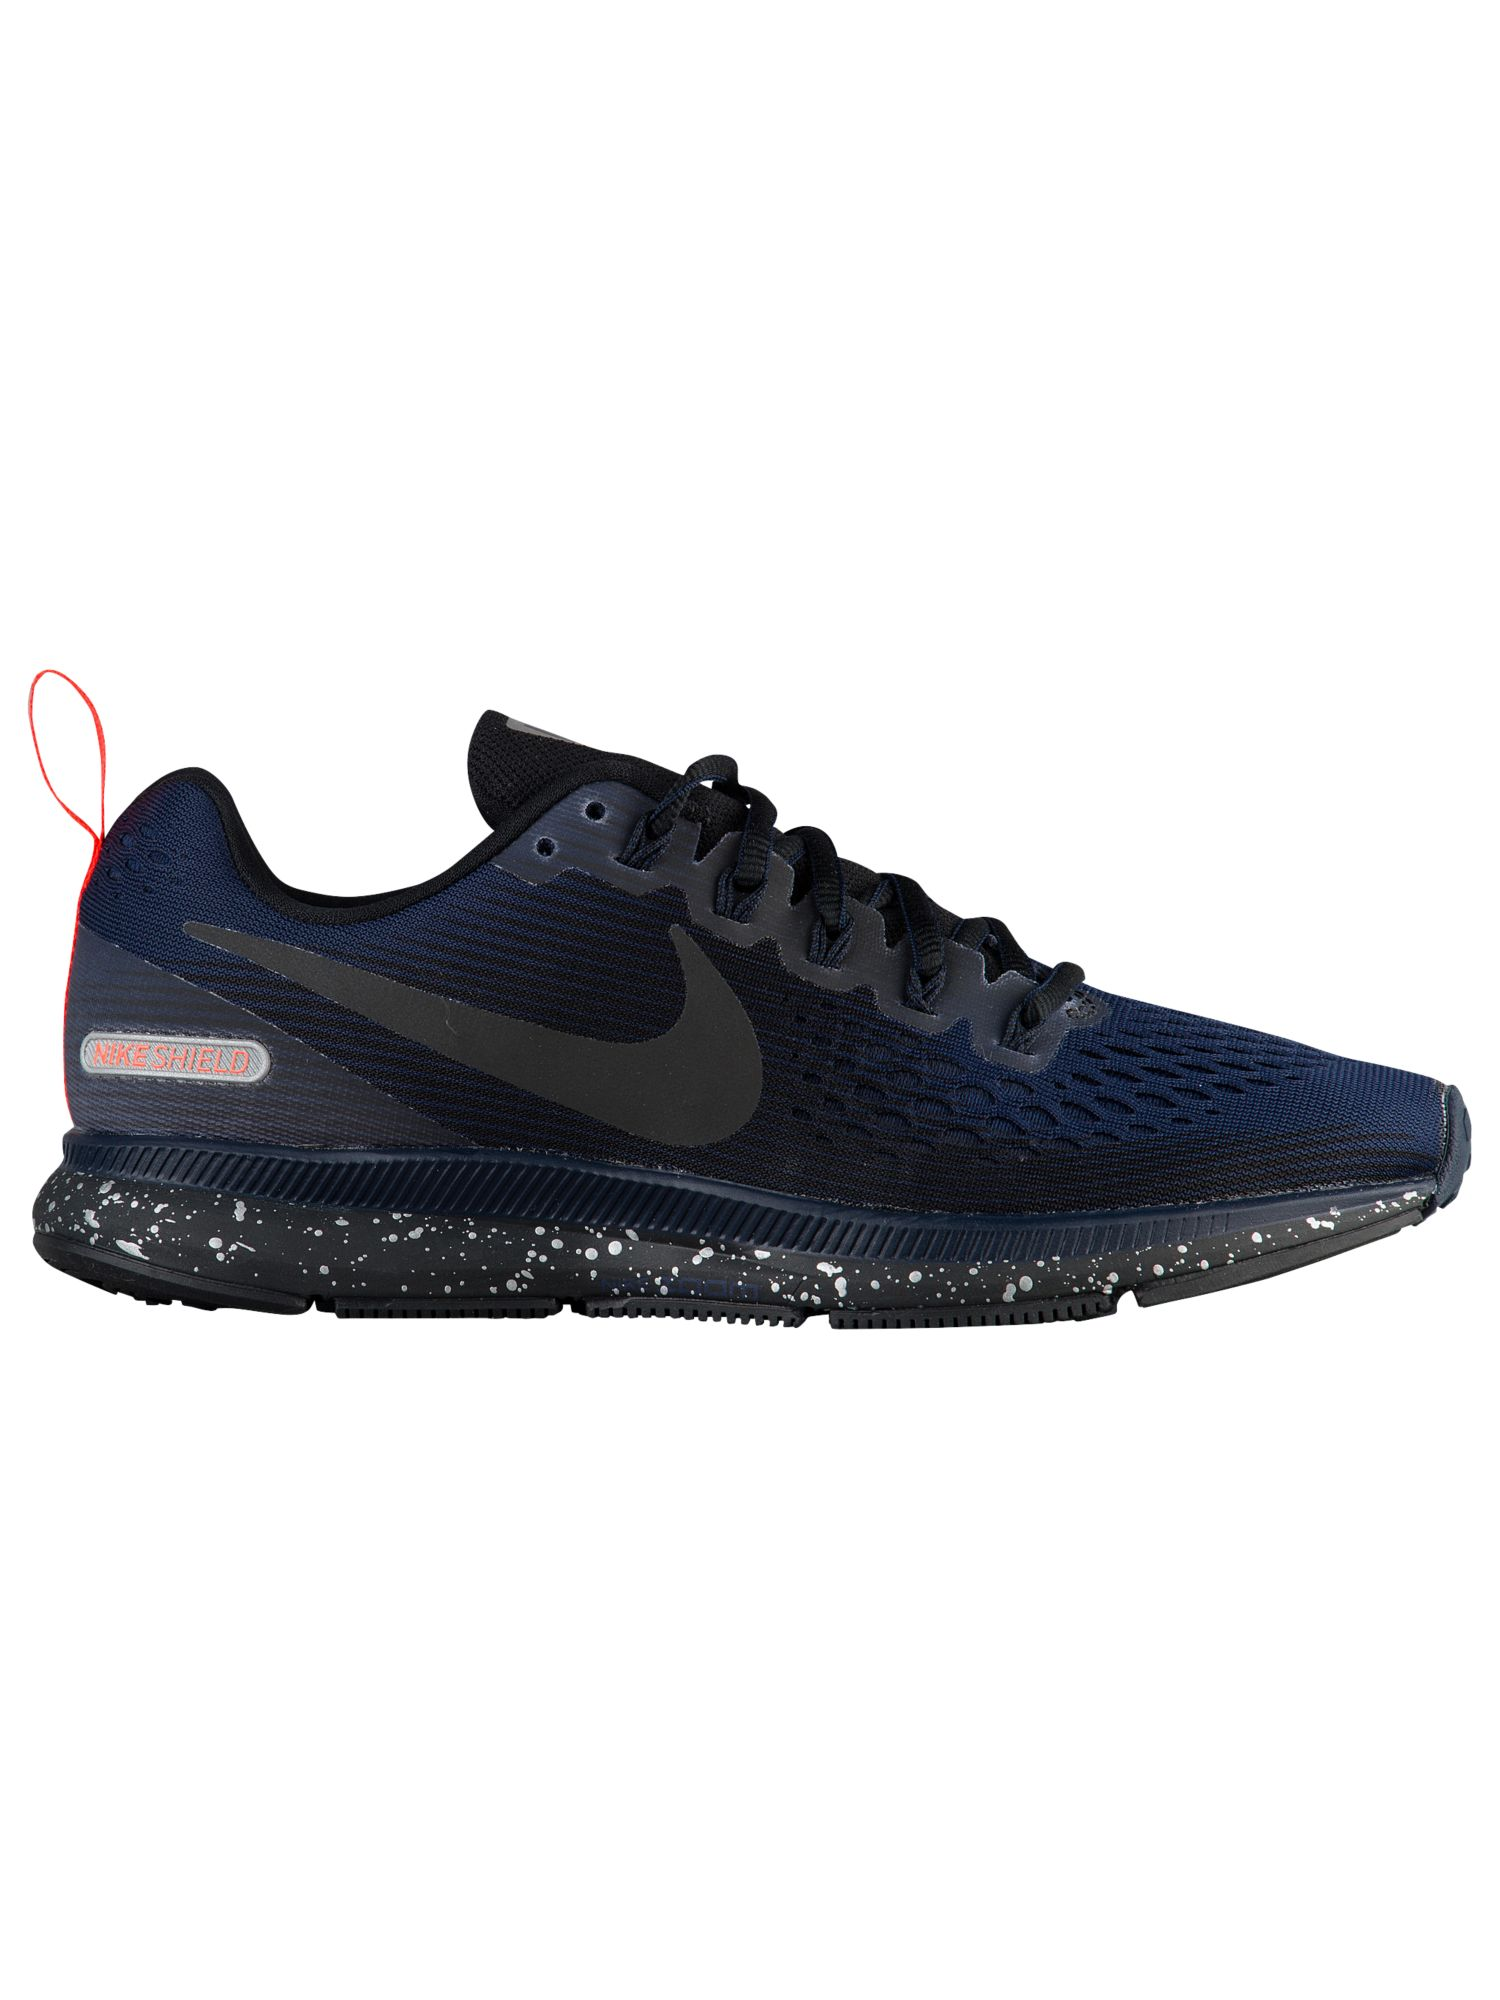 newest cad8e 1faf6 Nike Air Zoom Pegasus 34 Shield - Women's - Running - Shoes -  Black/Black/Black/Obsidian